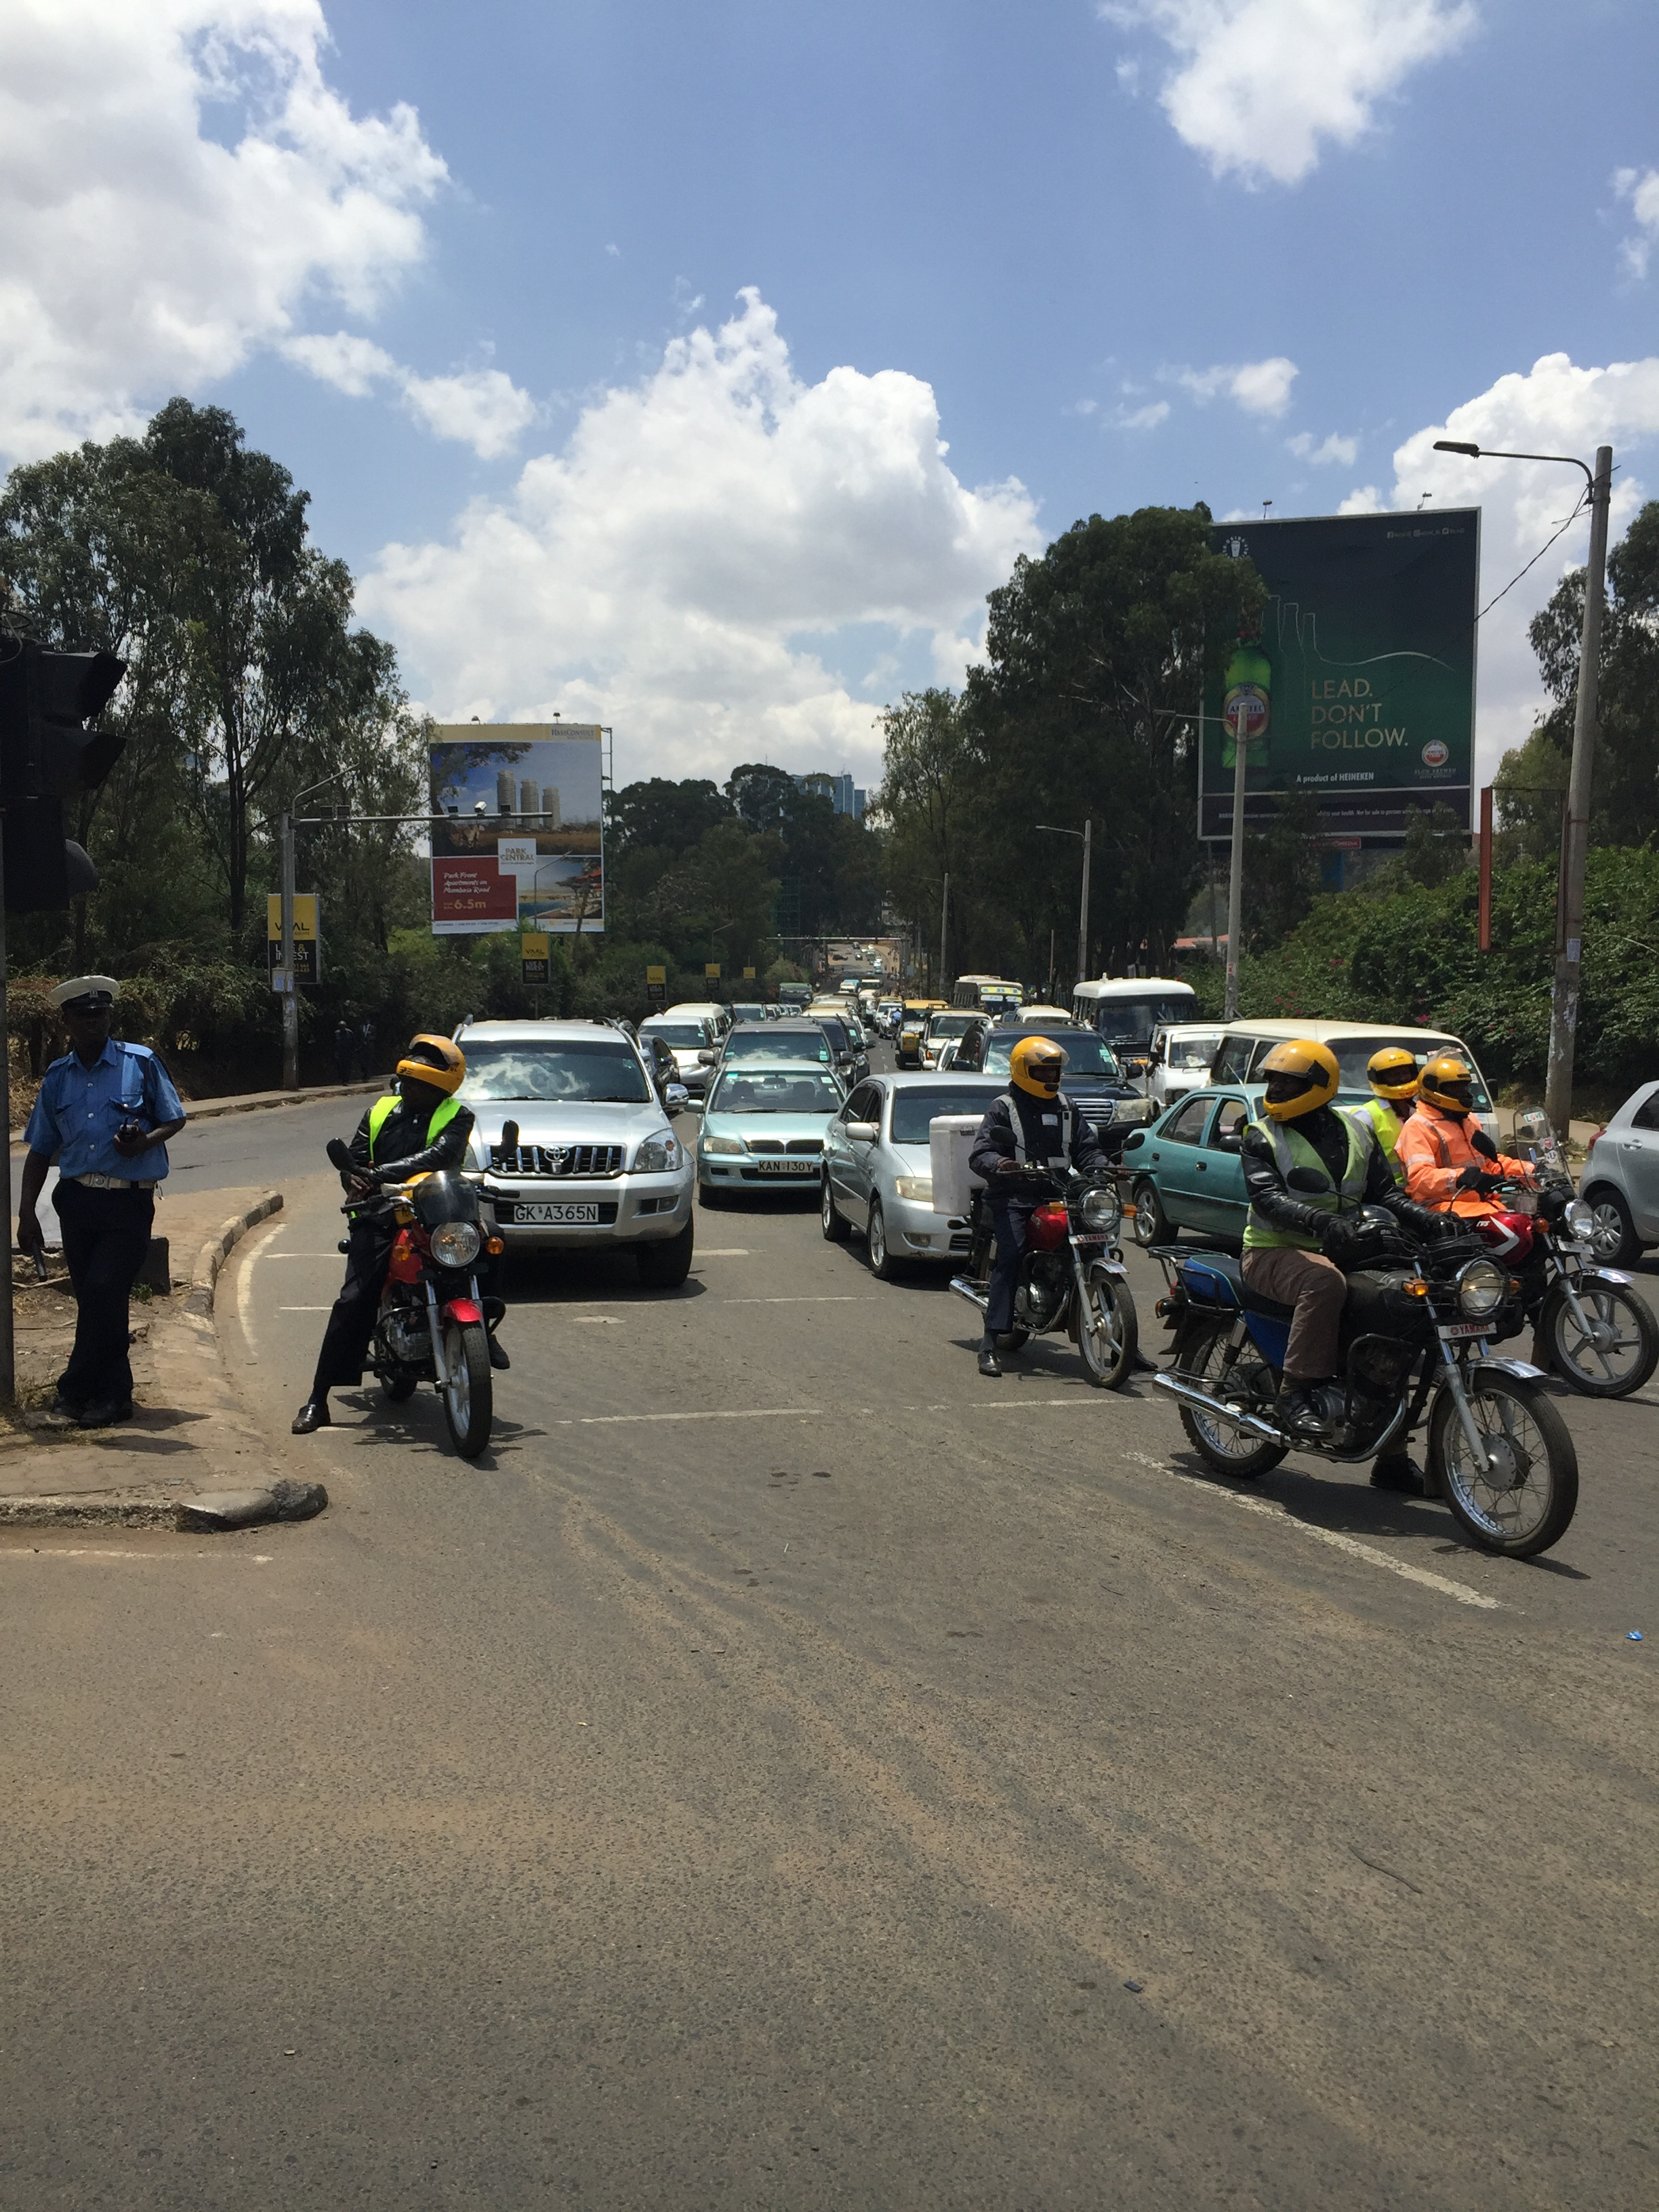 After the flight we return to the other wild part of Kenya - the Nairobi streets.